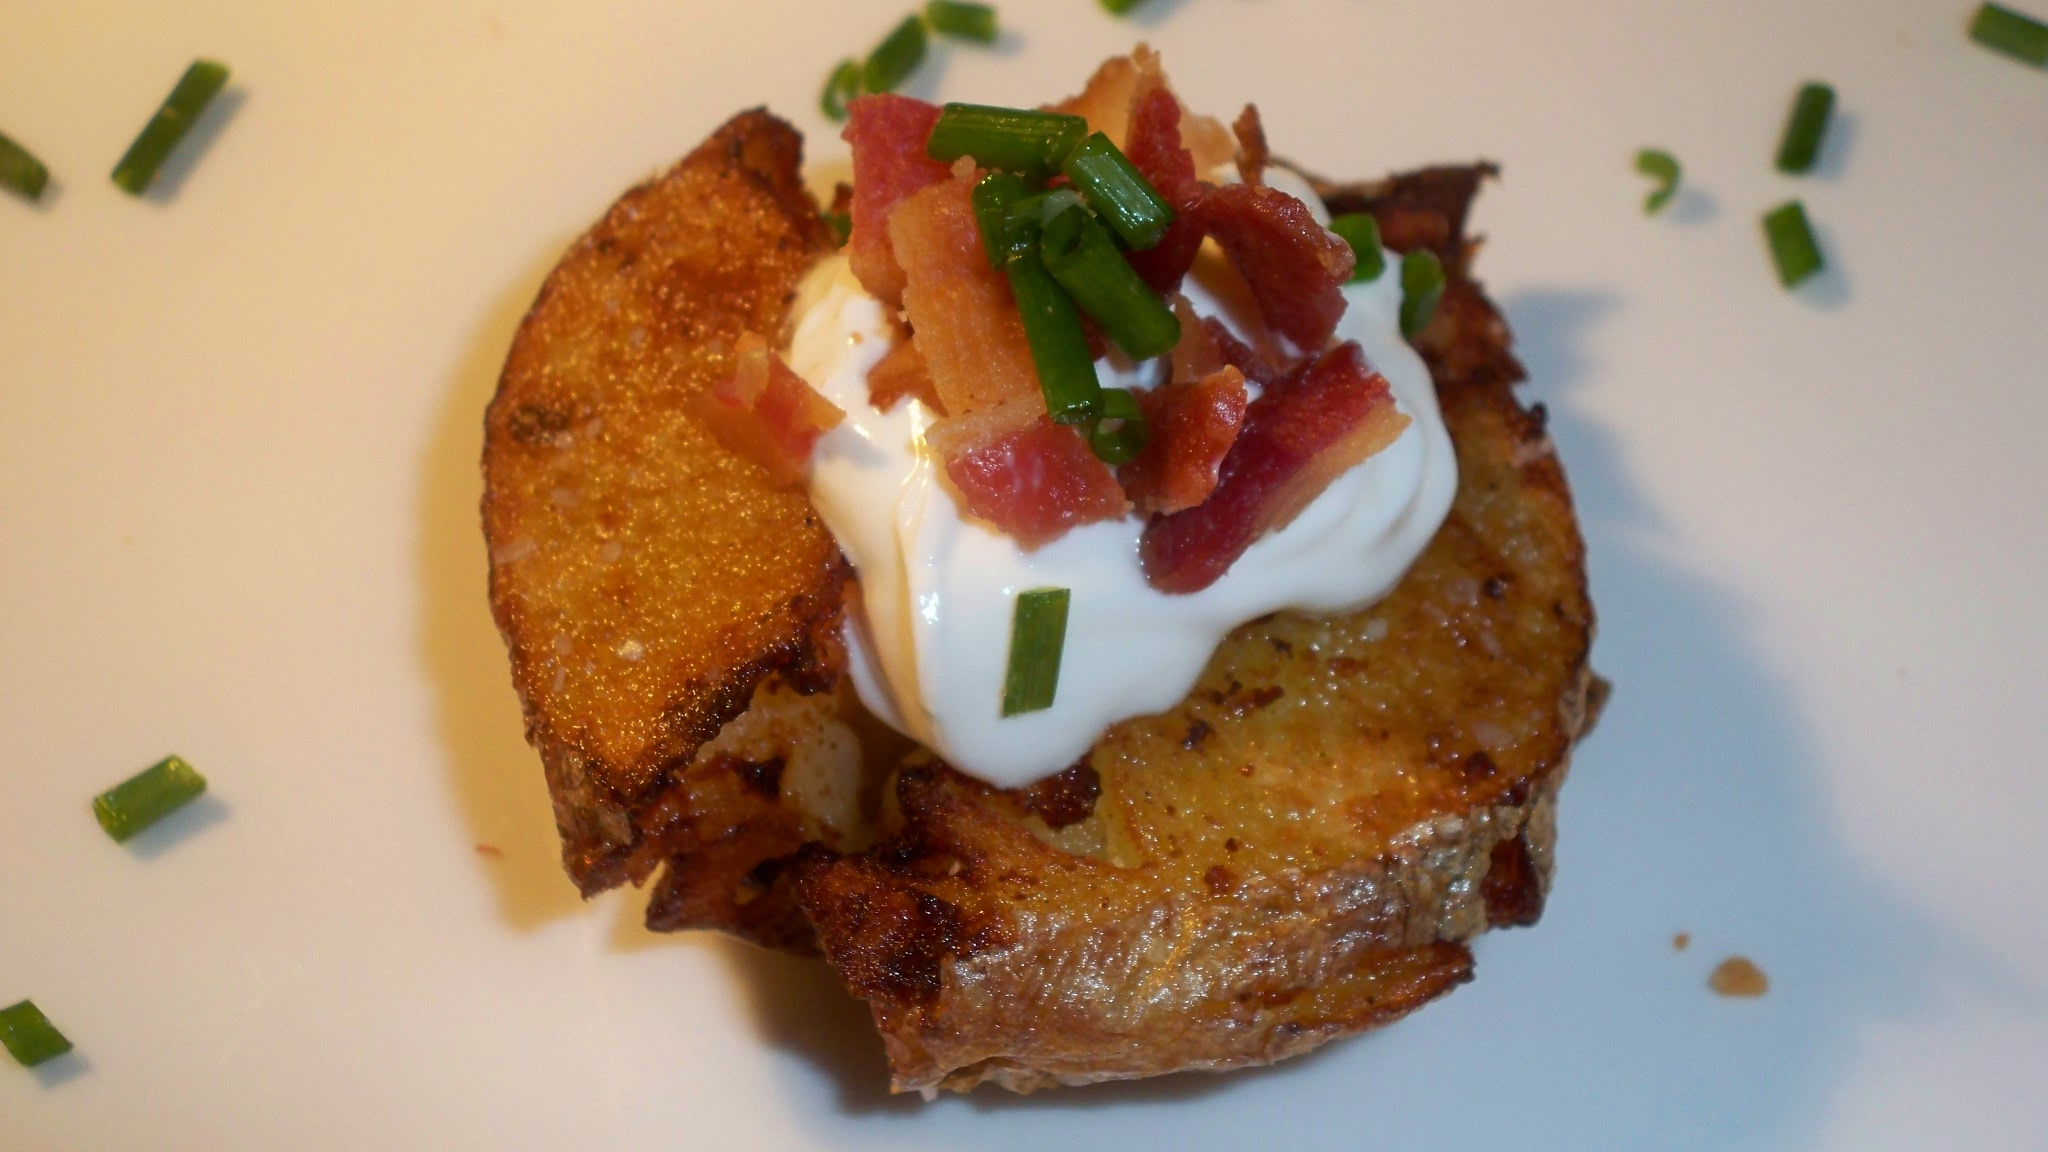 Potatoes Topped with Sour Cream, Bacon & Chives